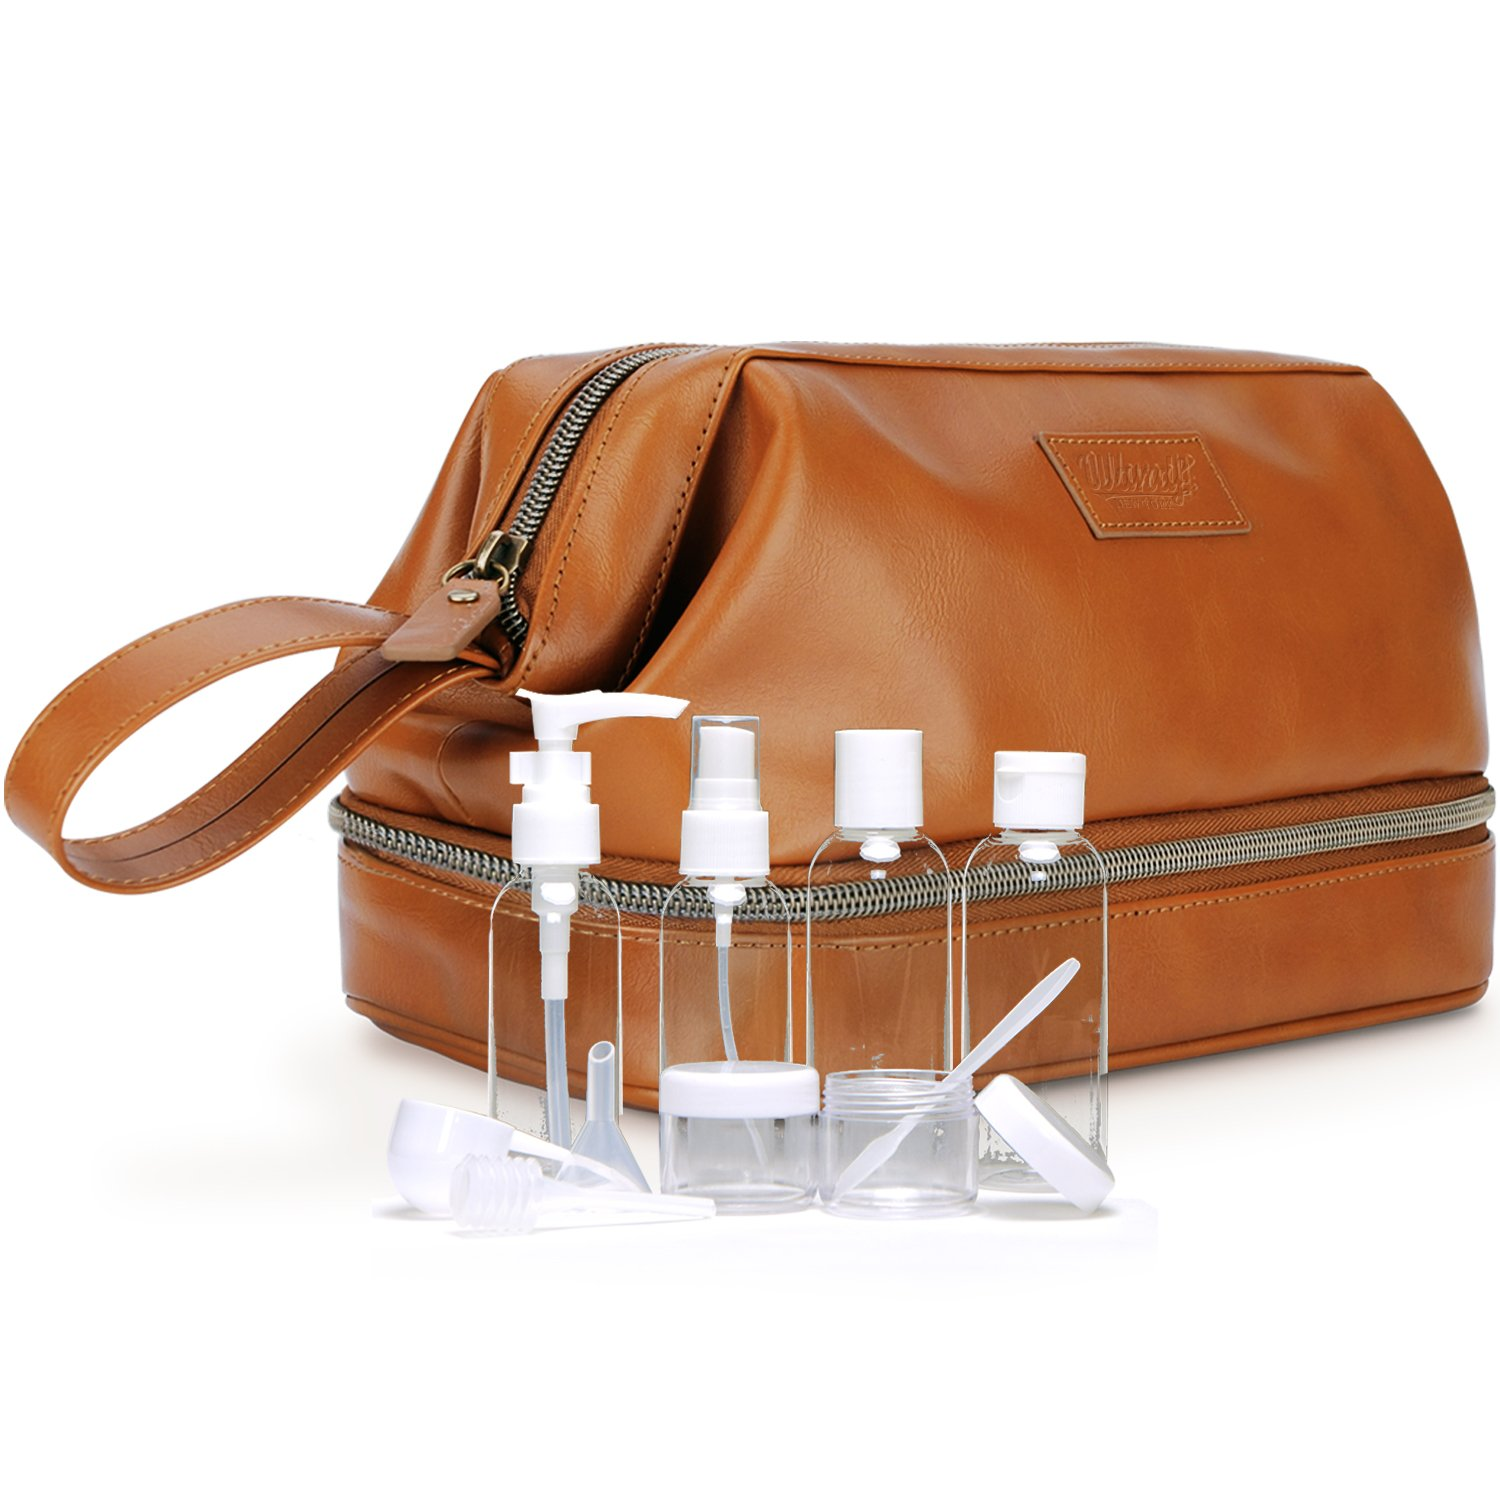 Amazon.com   Large Mens Leather Toiletry Bag Dopp Kit, Perfect Travel  Accessory or Gift, Includes BONUS 6 TSA Size Refillable Bottles in Clear Bag  (Brown)   ... 344361a45d